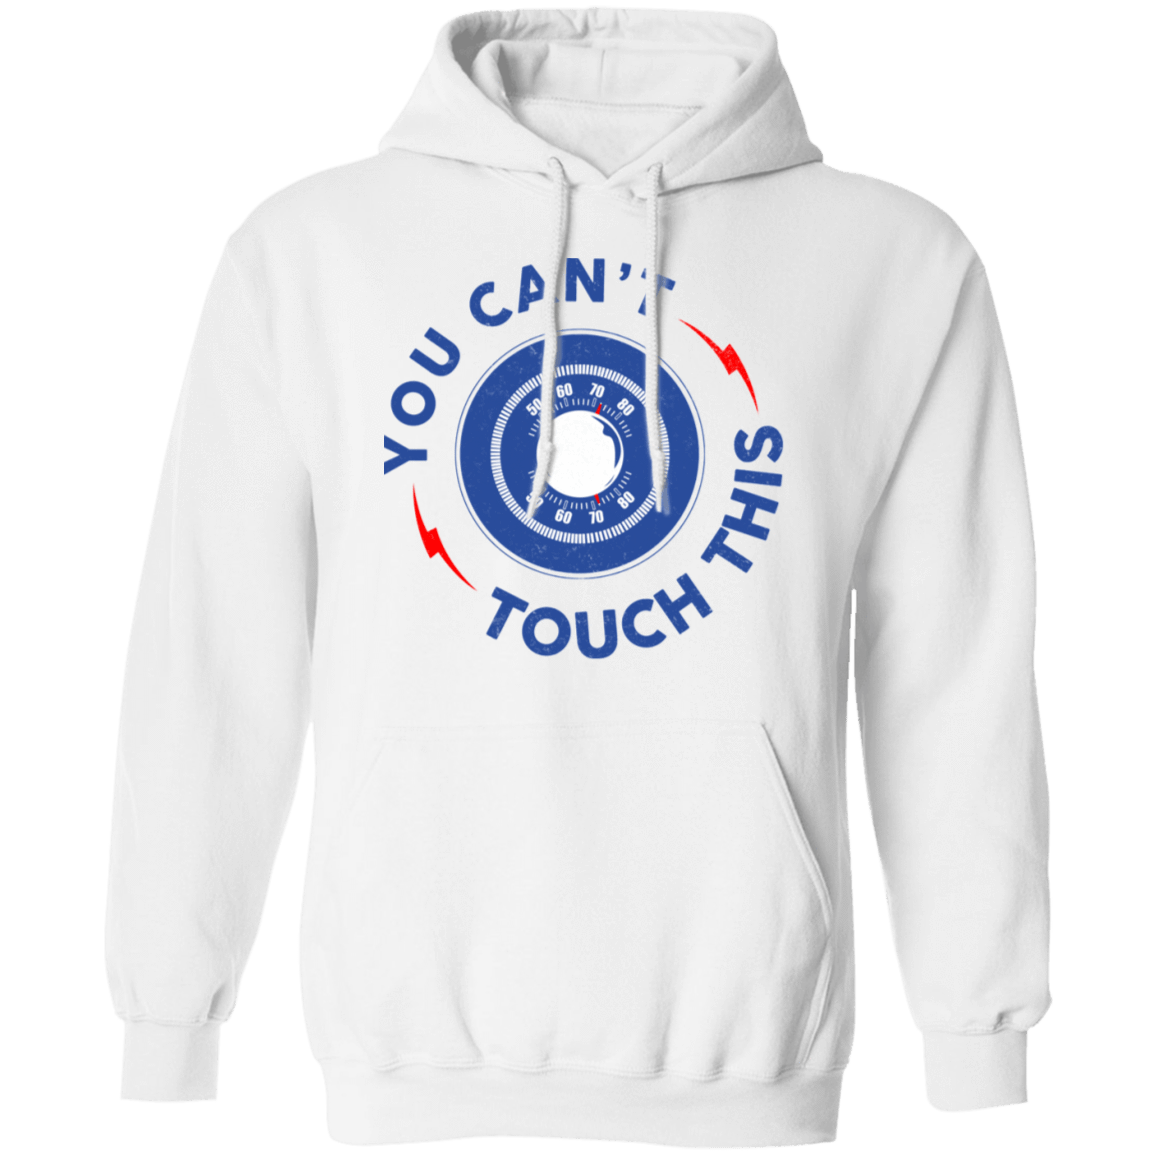 You Can't Touch This T-Shirts, Hoodies, Tank 541-4744-79999091-23183 - Tee Ript